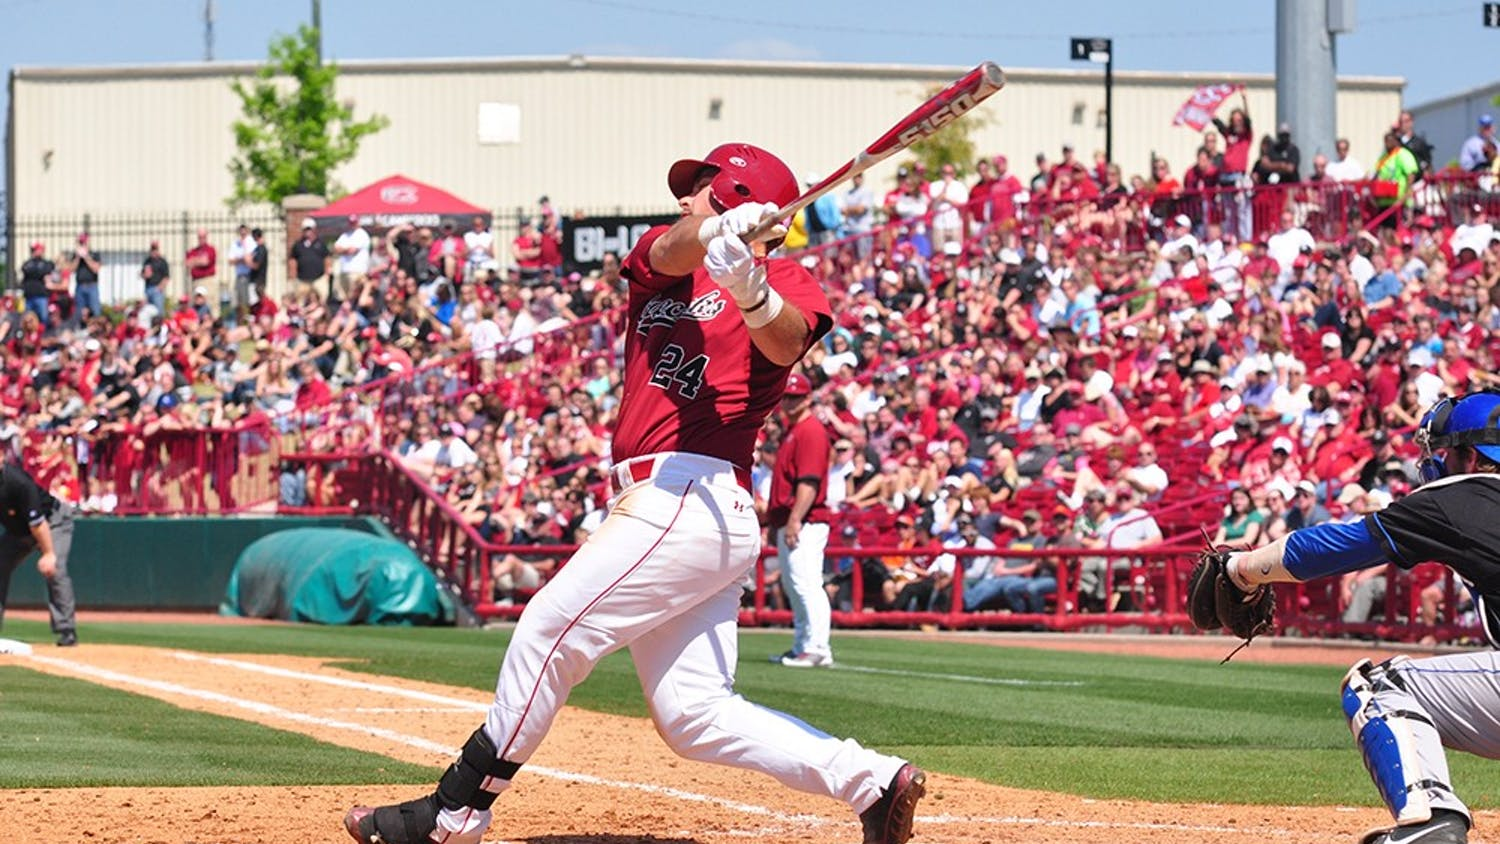 USC sophomore Brison Celek is riding a nine-game hitting streak. He had the game-winning hit in Saturday's second contest.